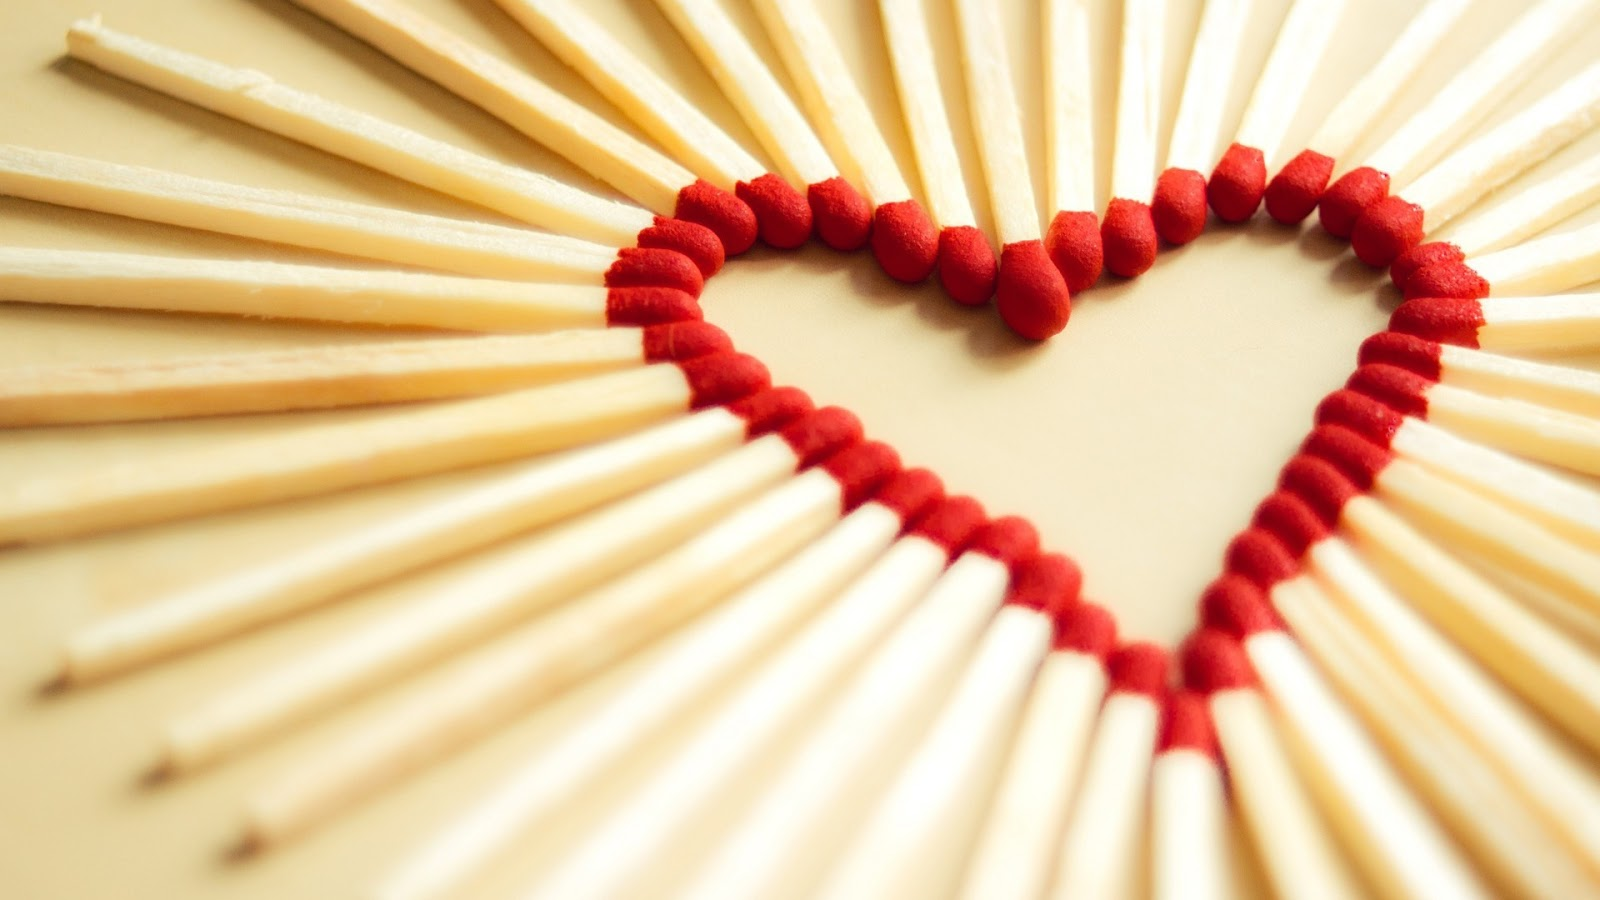 Love Matchsticks 1920x1080 Wallpaper